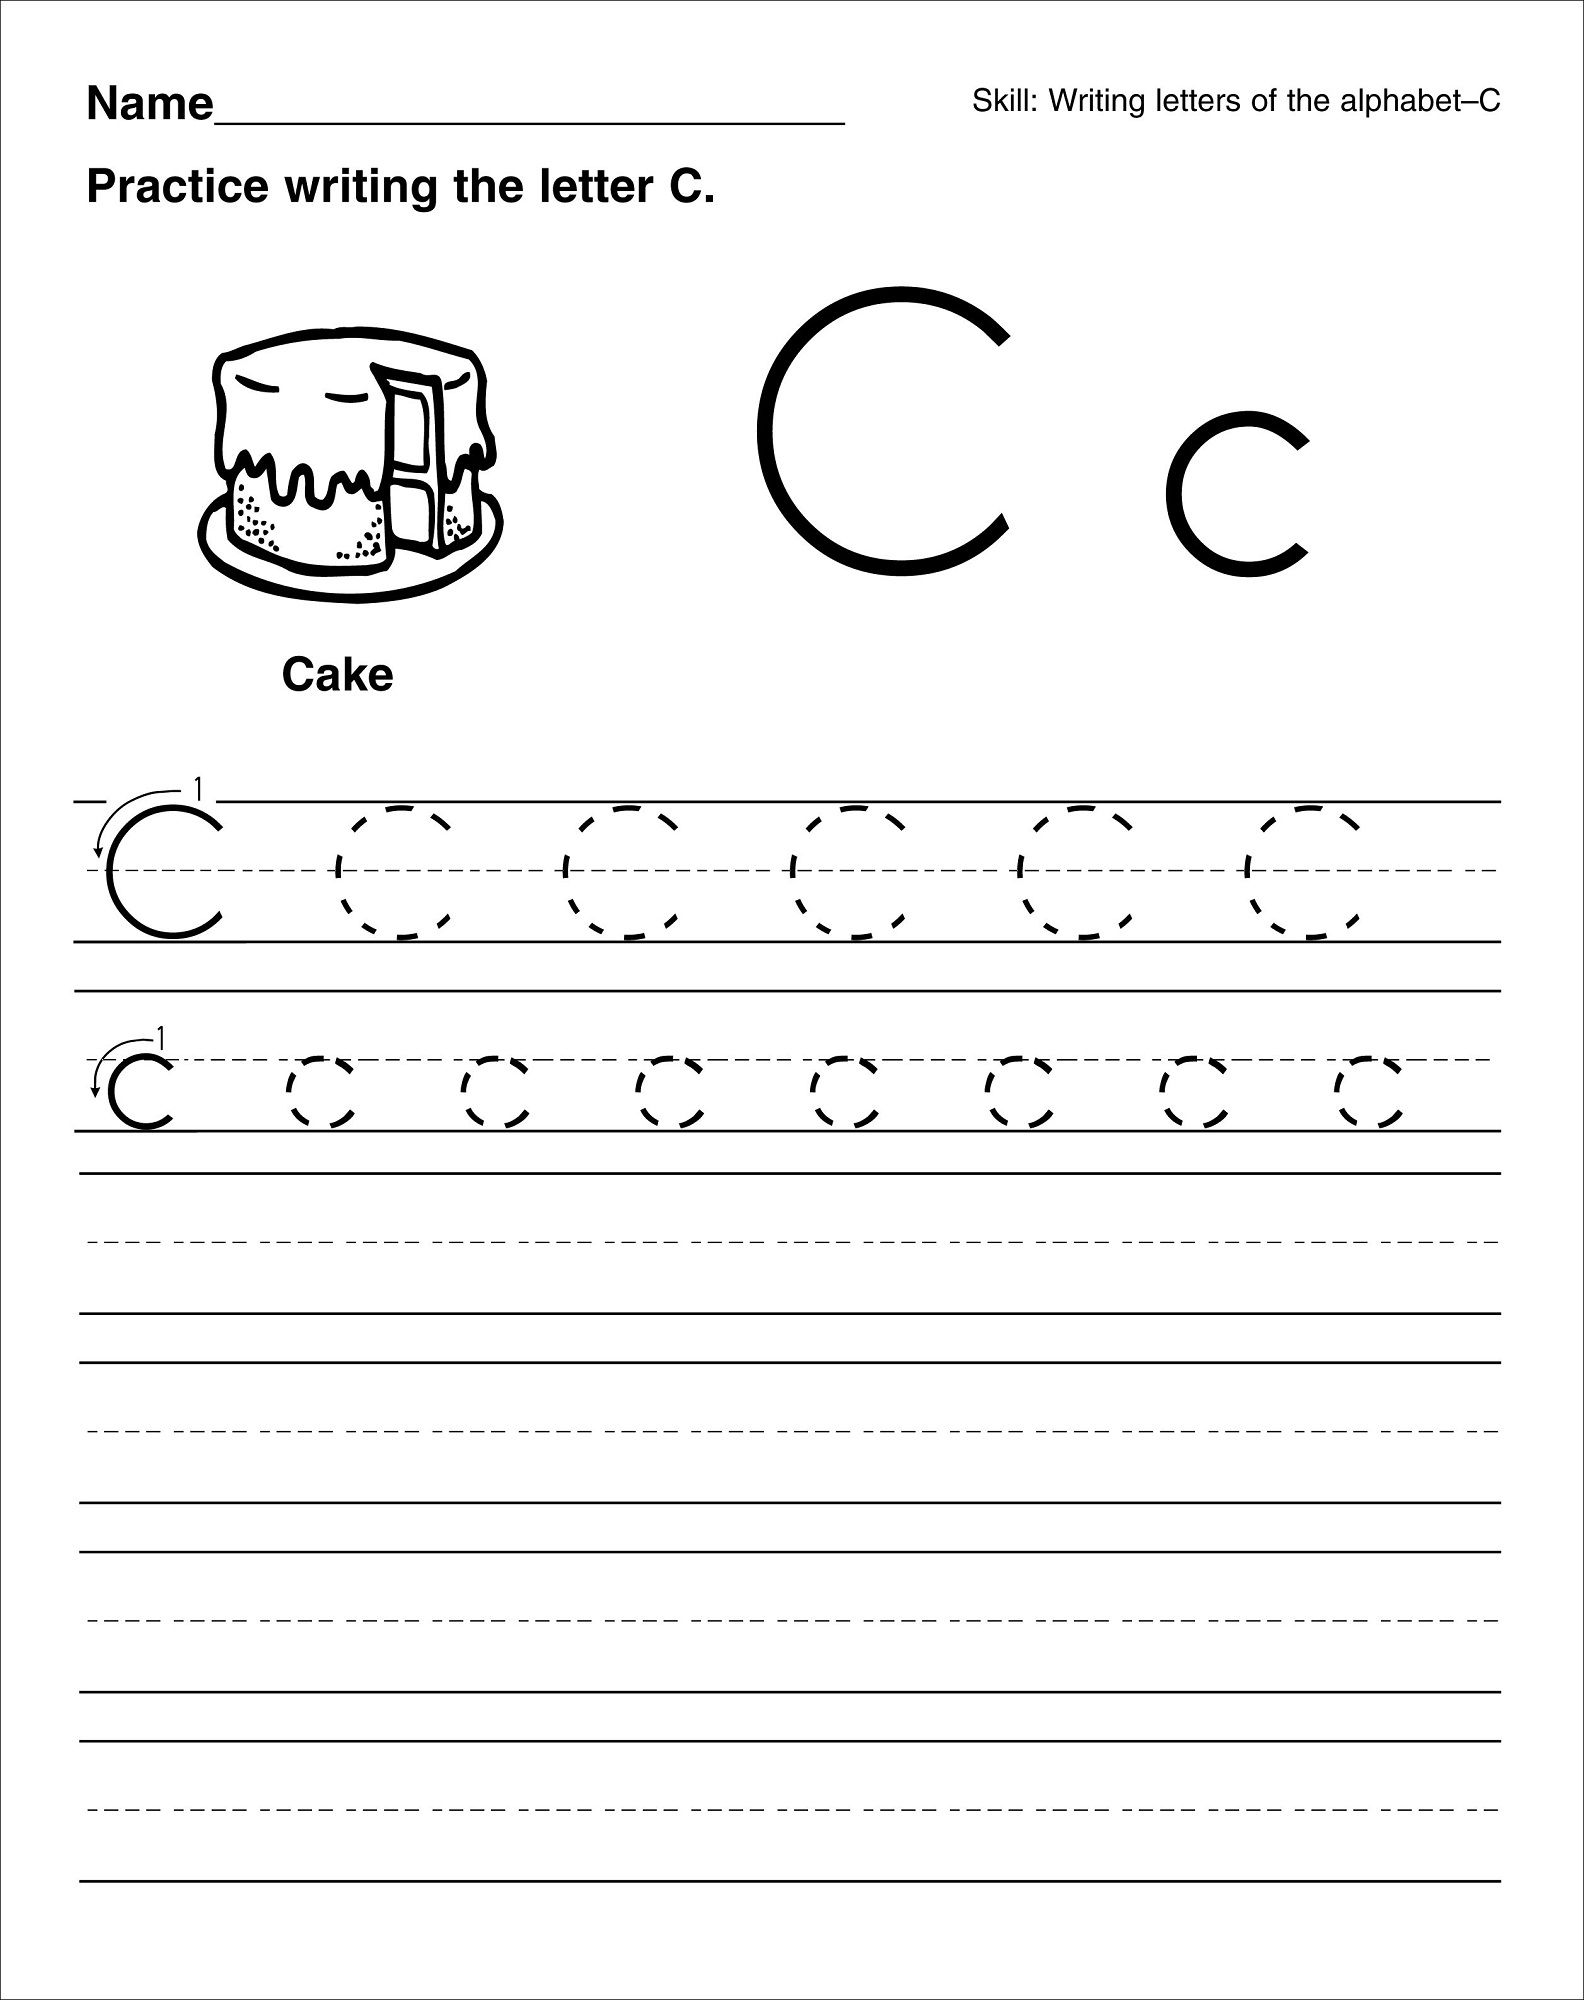 Worksheet Tracing The Letter C trace the letter c worksheets activity shelter kids shelter